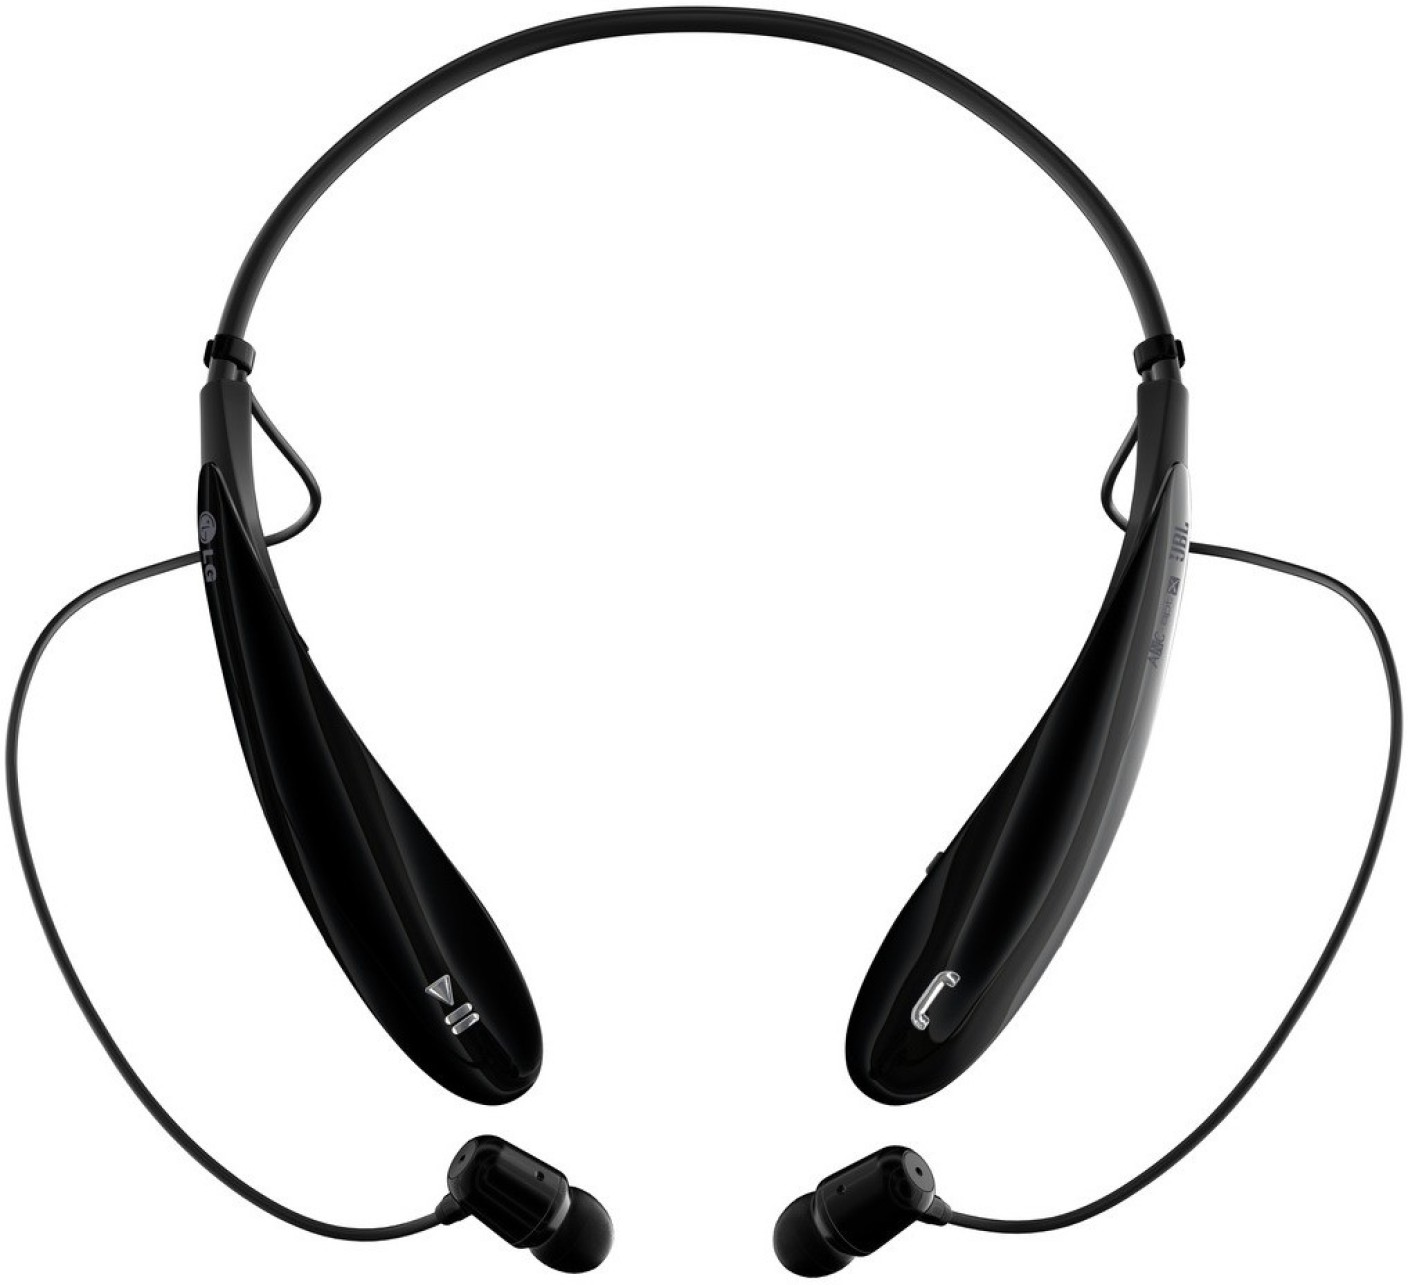 OTD Lg Hbs-730 Bluetooth Headset With Mic Price In India